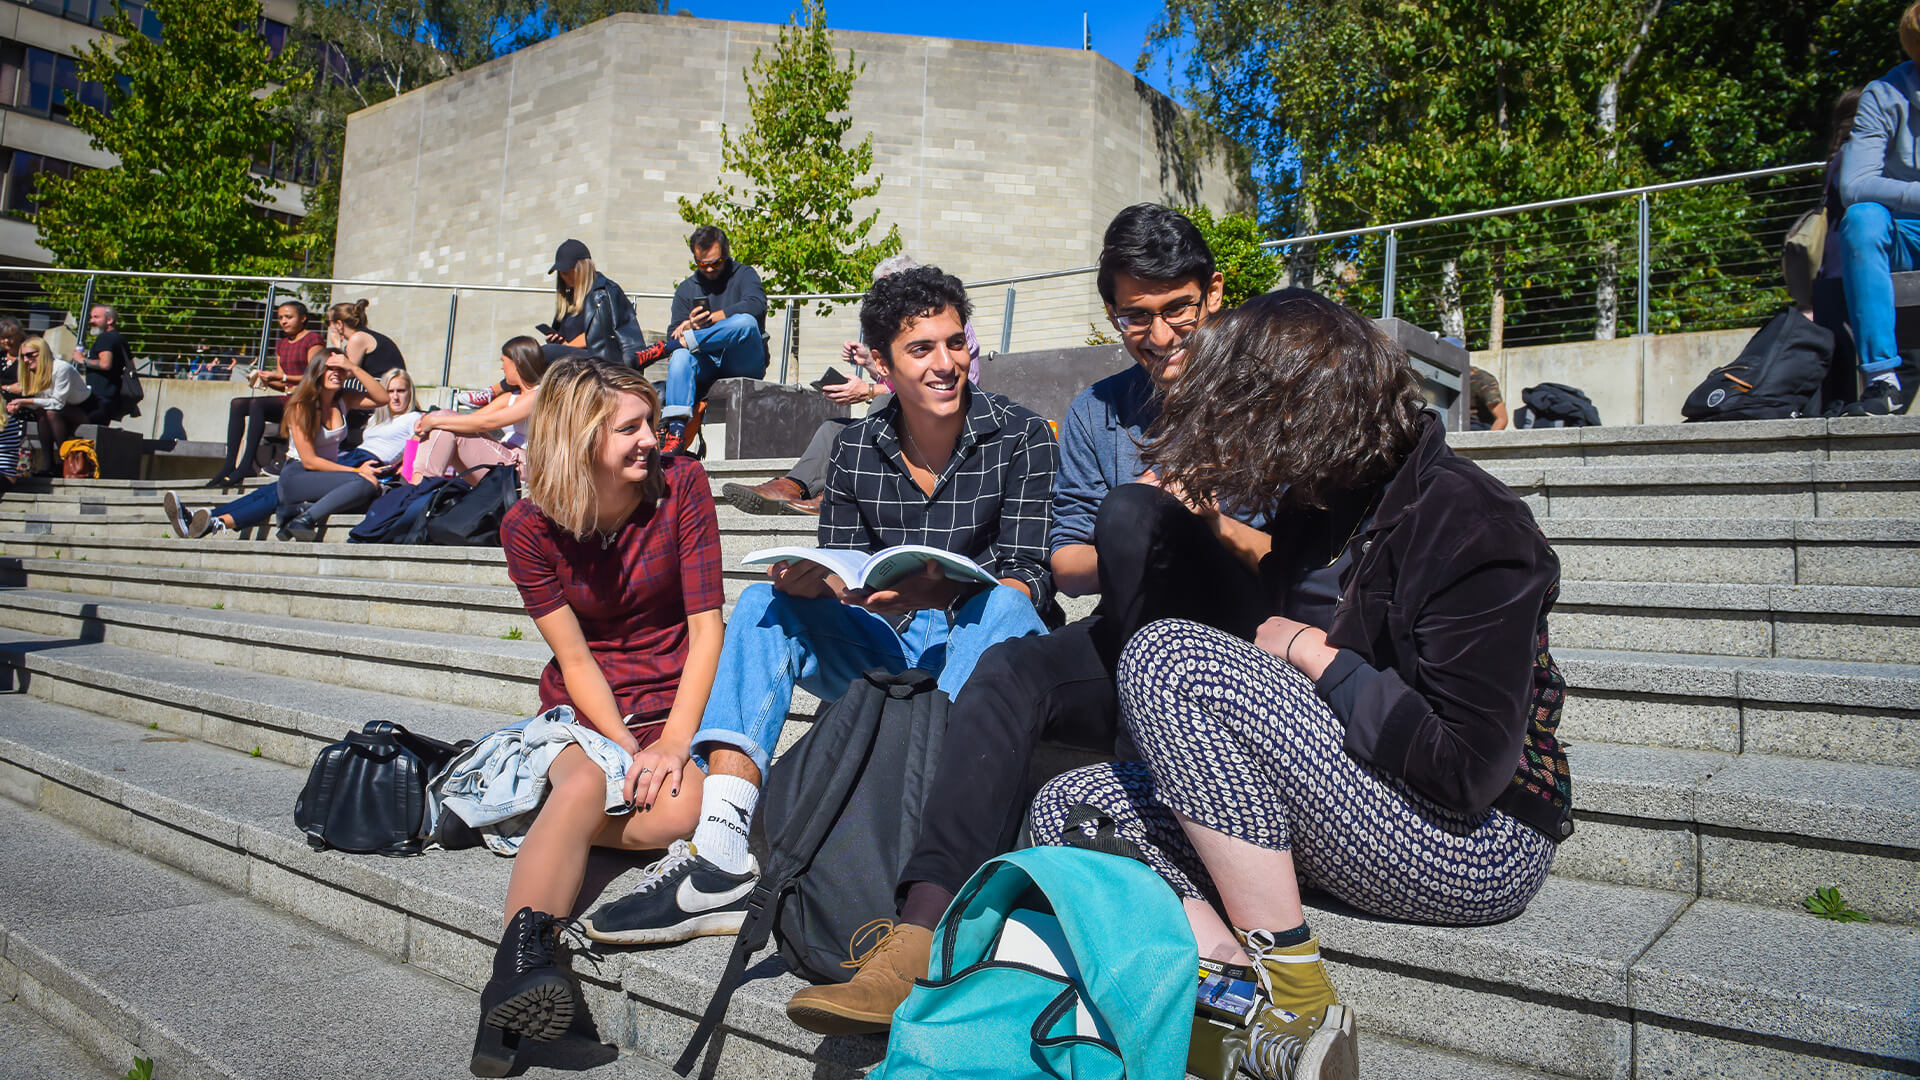 Photo of students studying outside at University of East Anglia campus